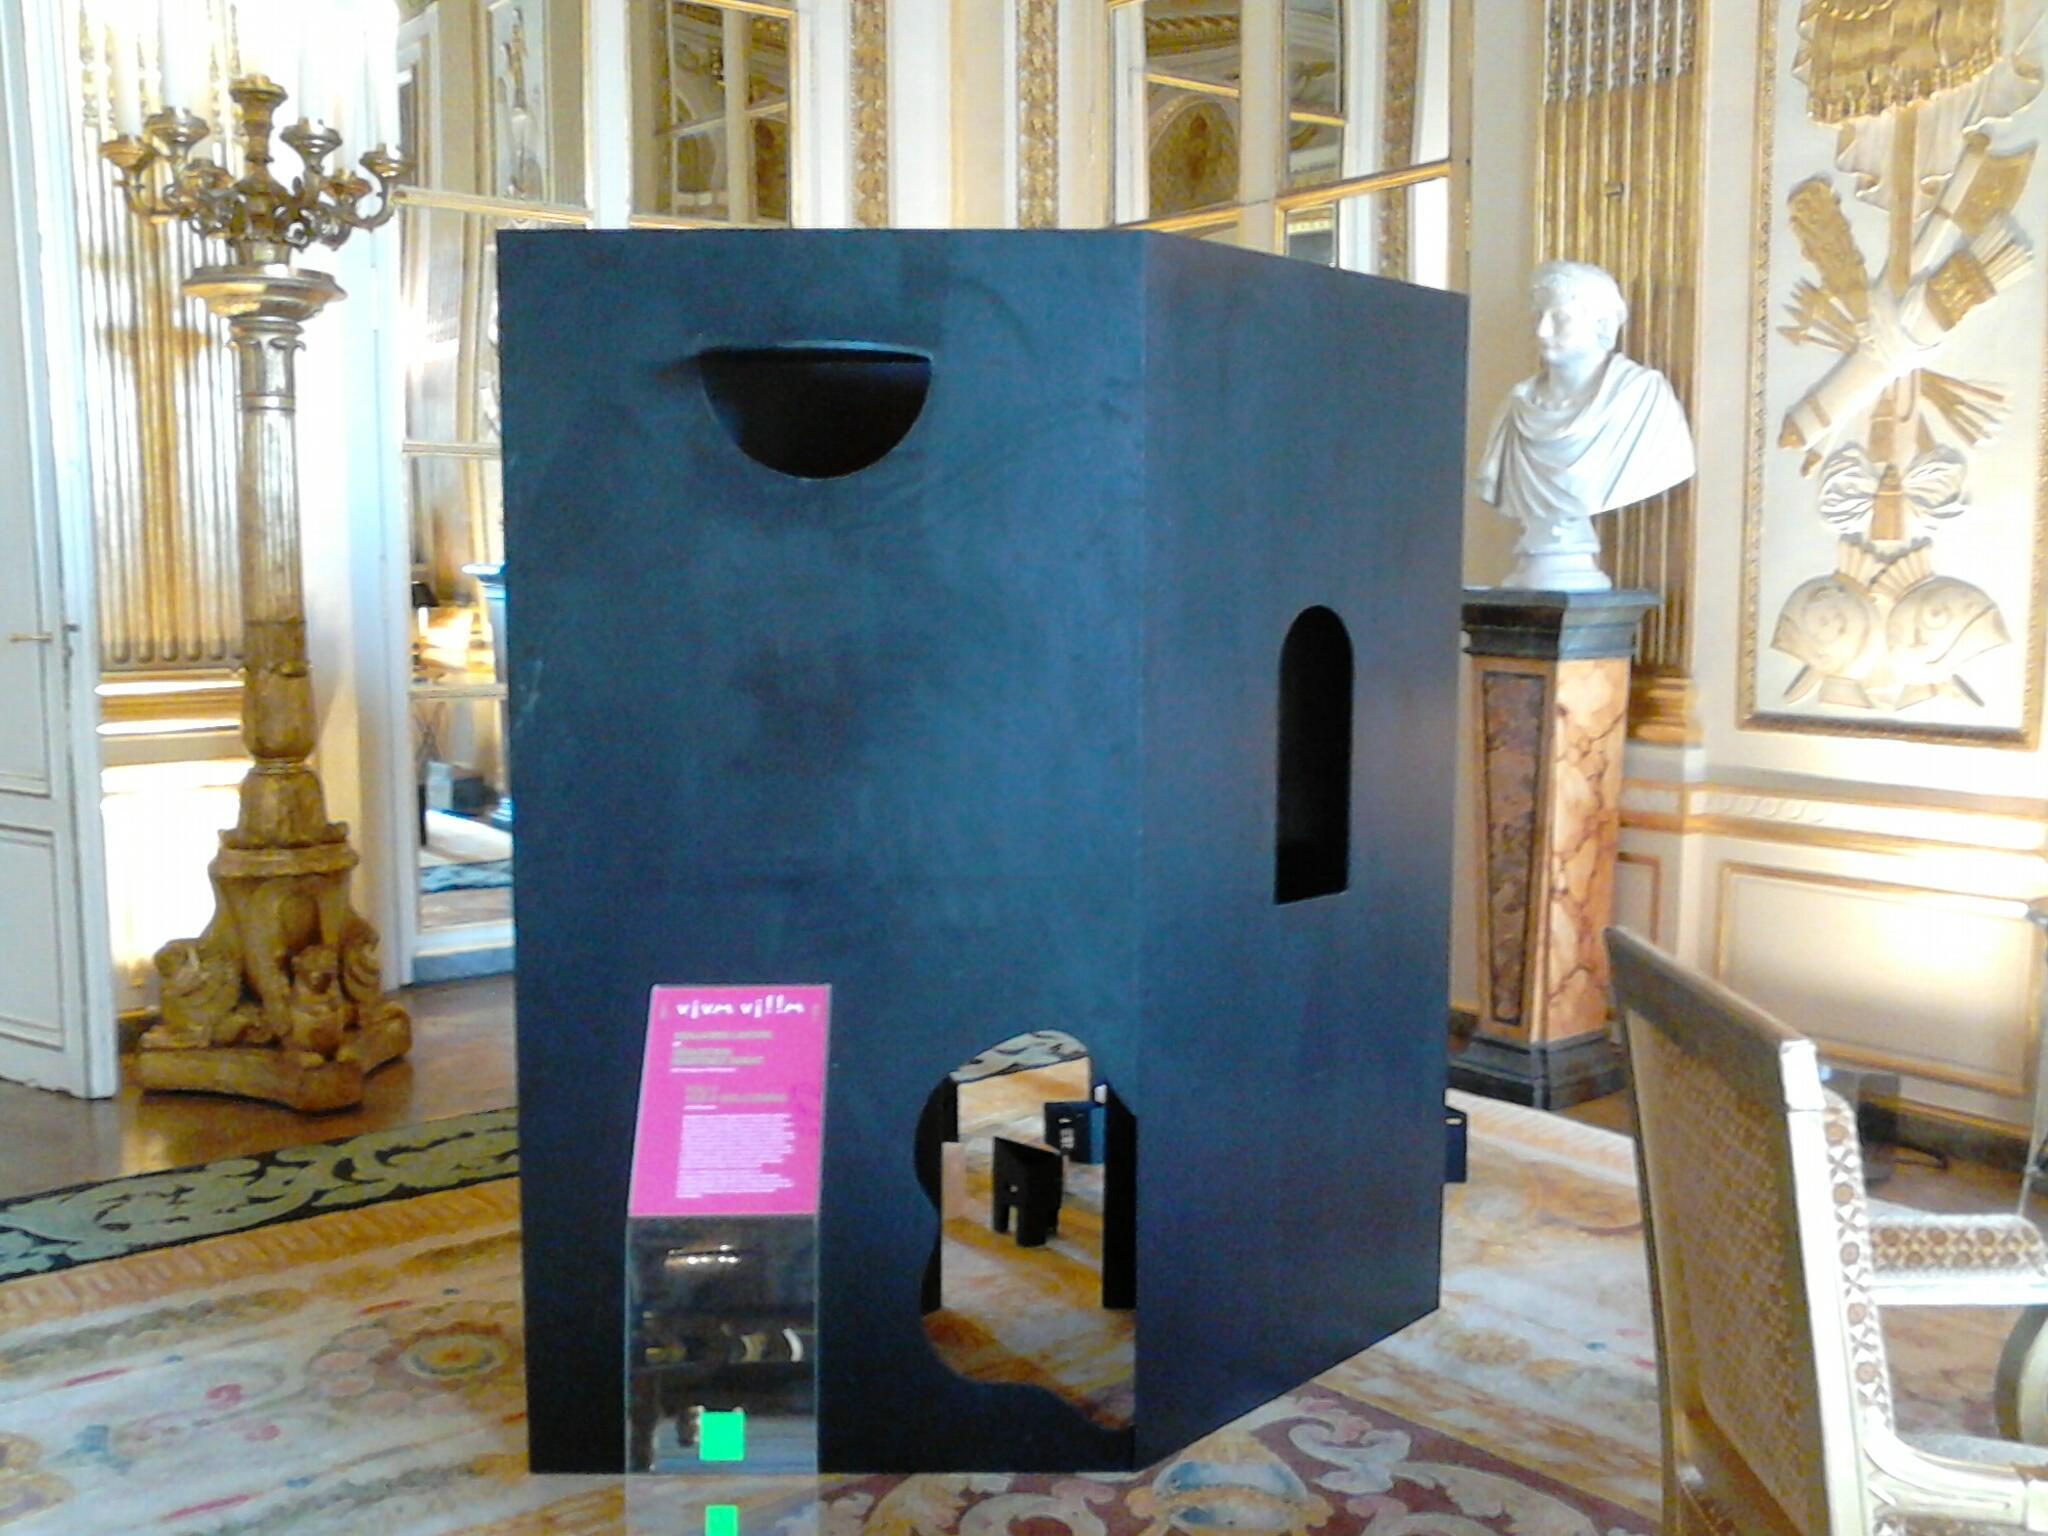 Folly for a Welcoming, scale models by artists-in-residence at the Villa Kujoyama, Benjamin Lafore and Sébastien Martinez Barat, on show at the Culture Ministry in Paris, September 2016 as part of 'Viva Villa'.